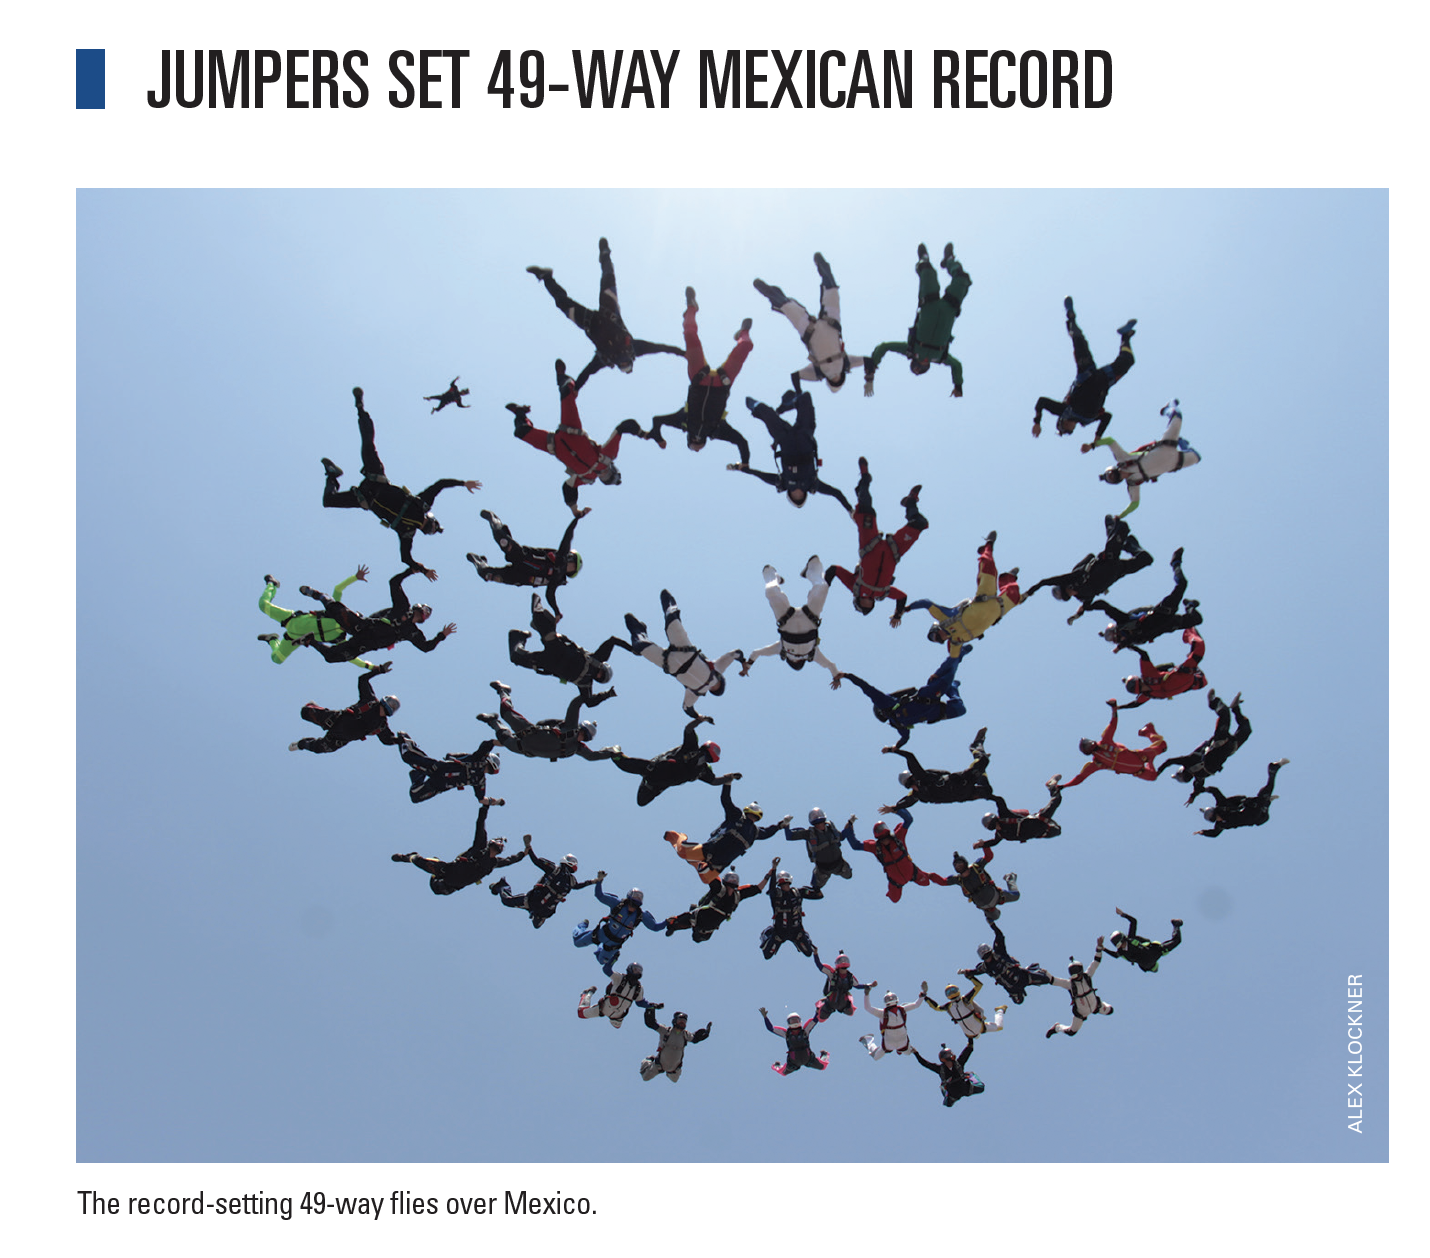 Jumpers Set 49-Way Mexican Record